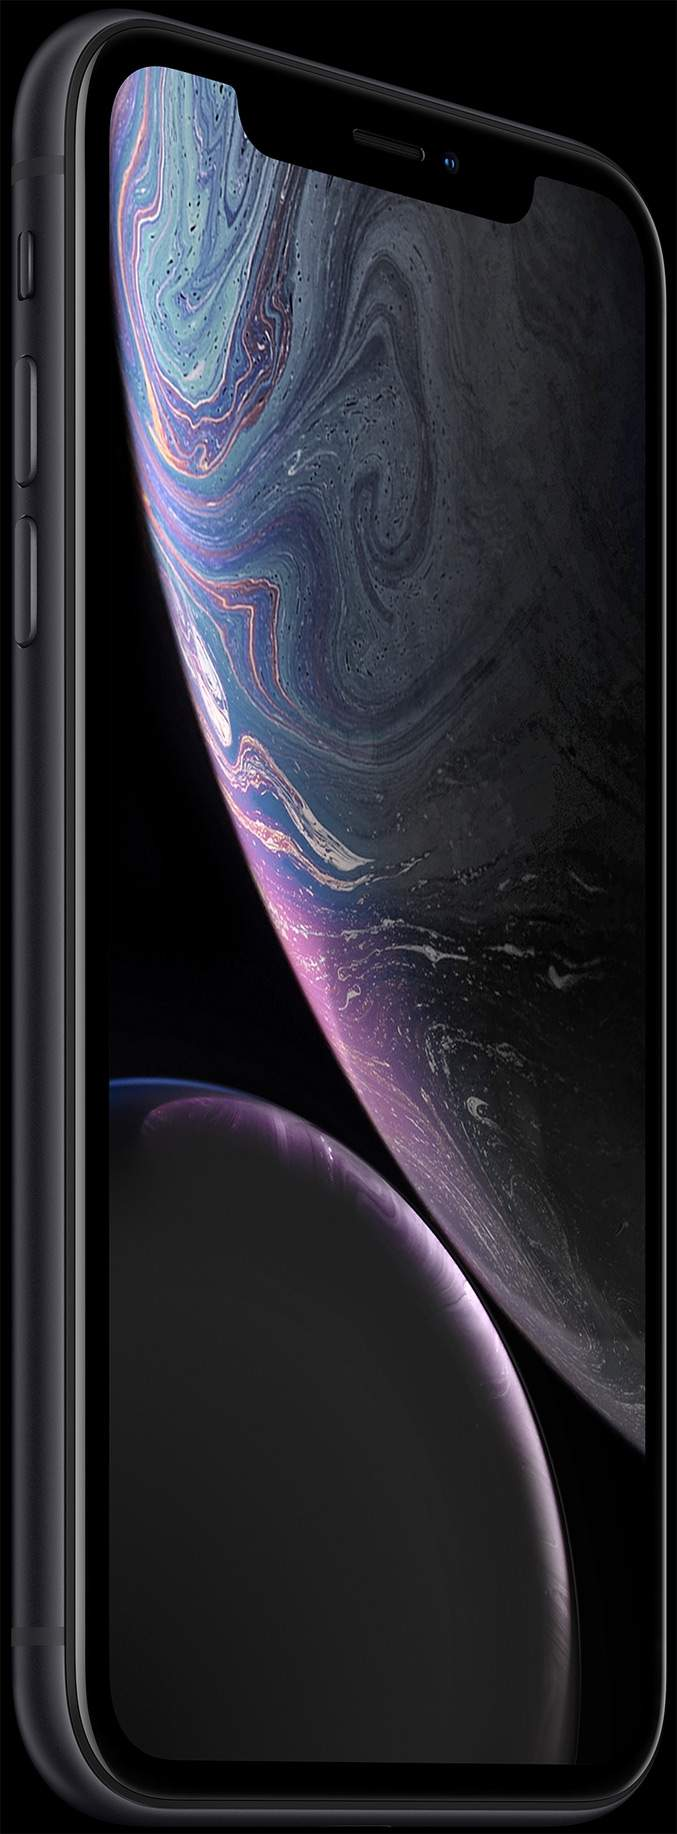 iPhone XR display